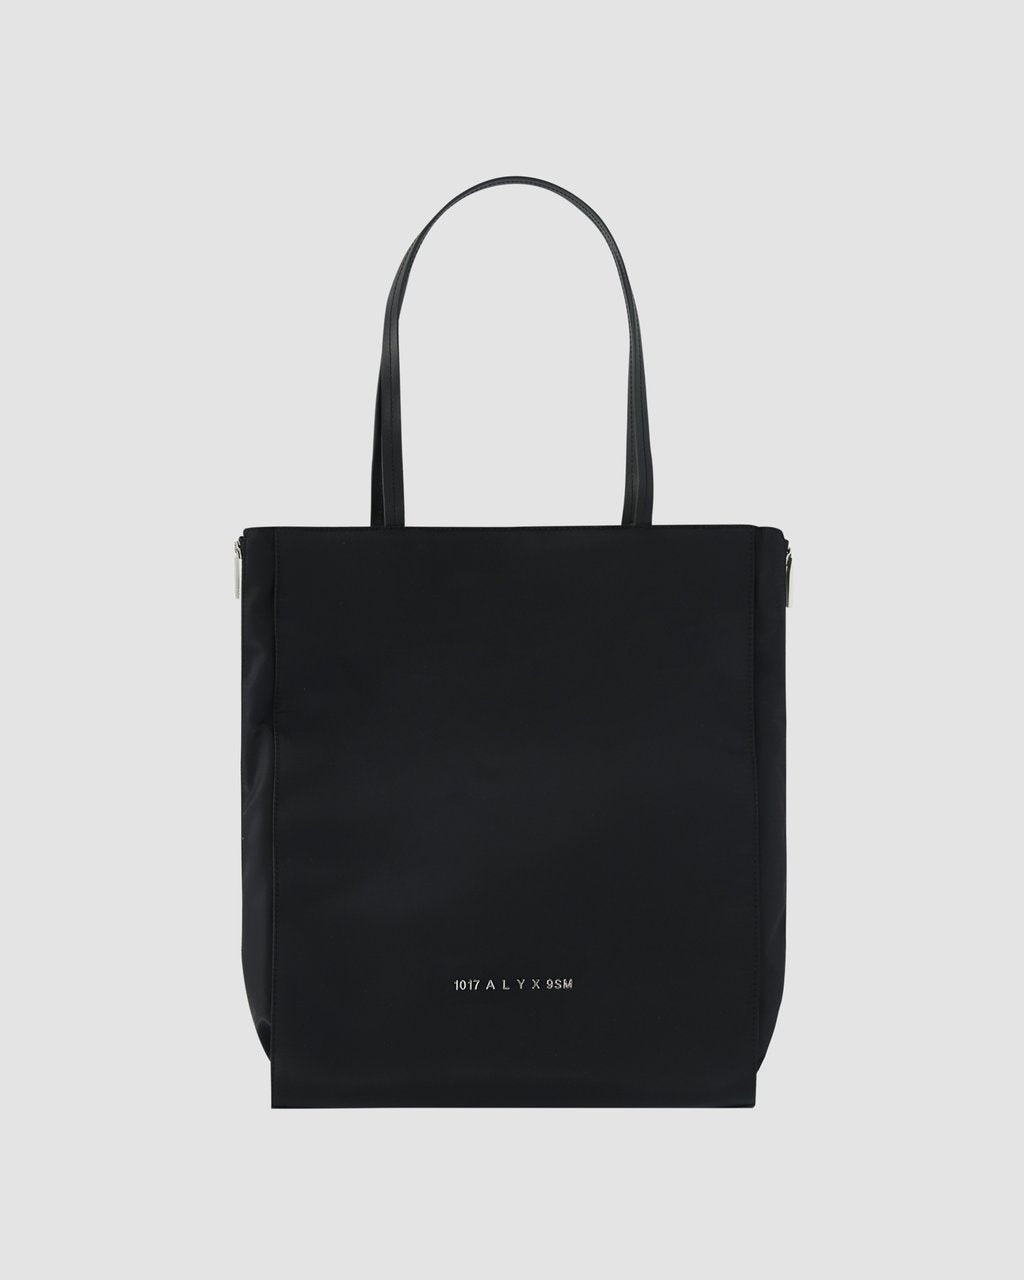 1017 ALYX 9SM RE-NYLON SHOPPER TOTE